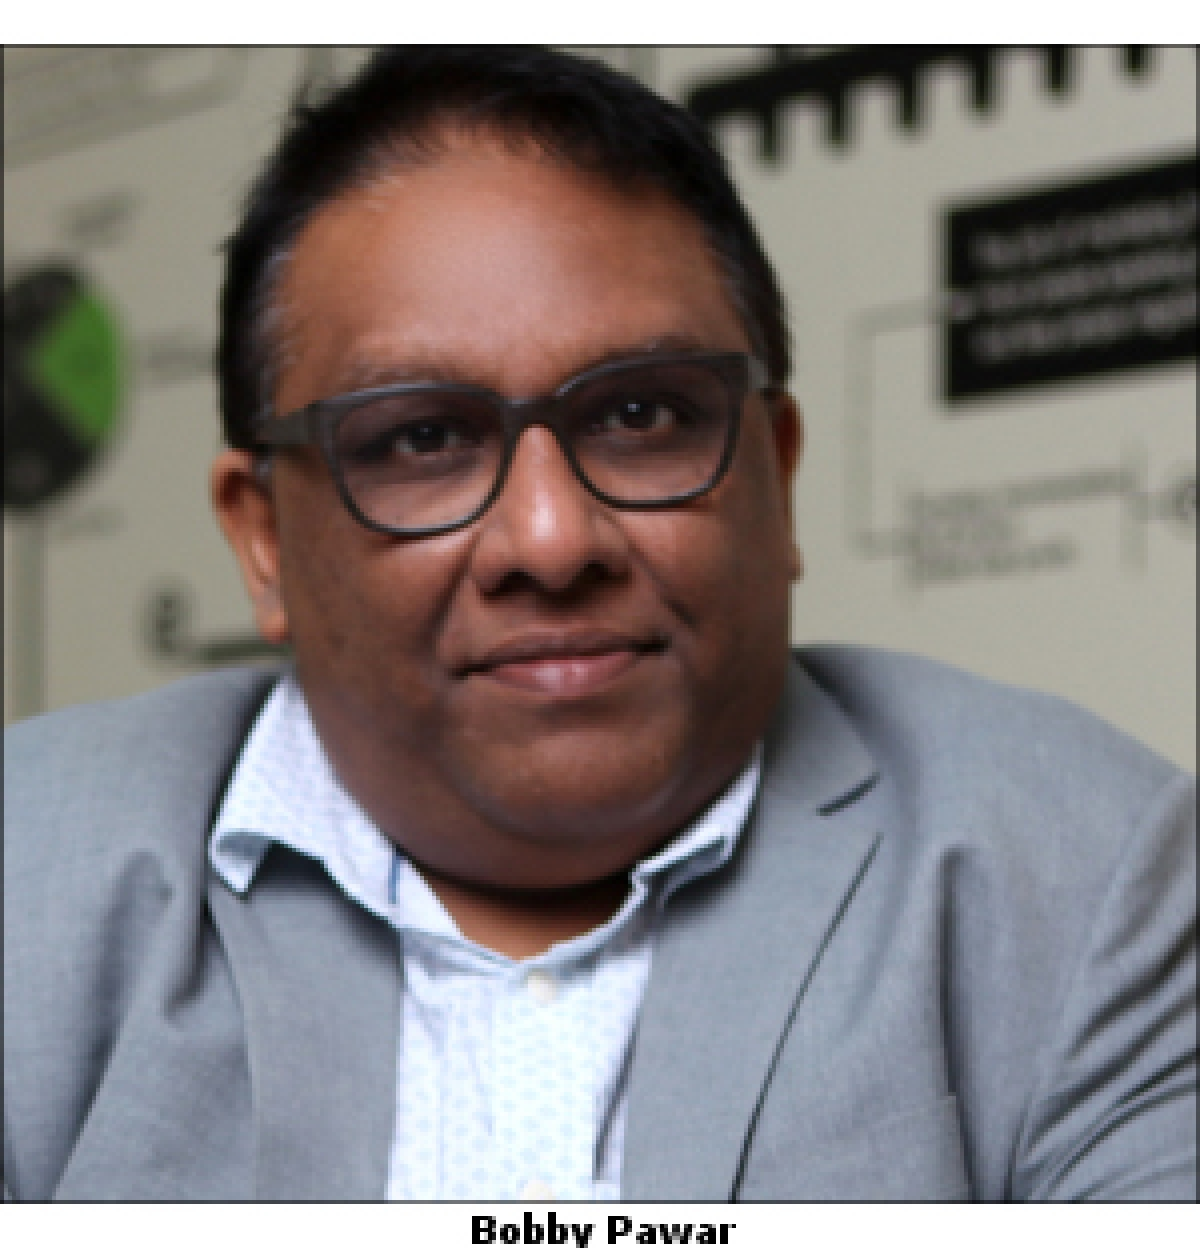 Bobby Pawar, Partha Sinha are now Managing Directors, Publicis South Asia